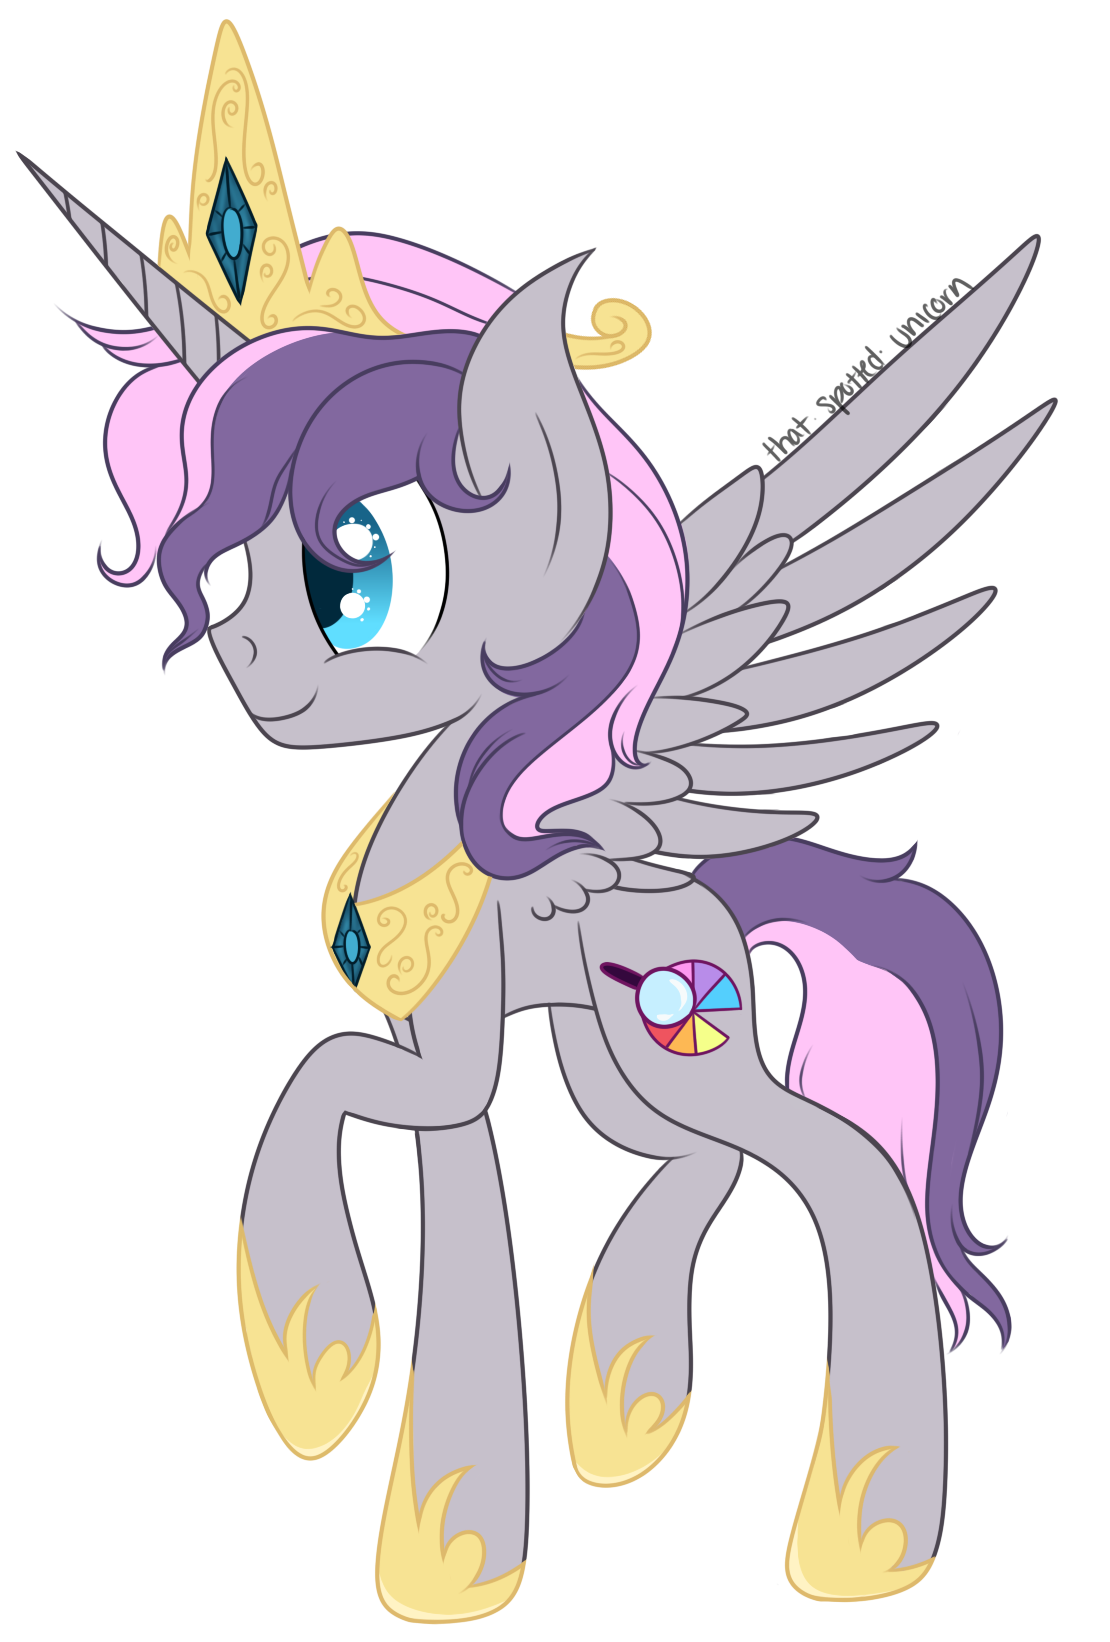 Alicorn drawing cartoon. Gift princess digibrony by